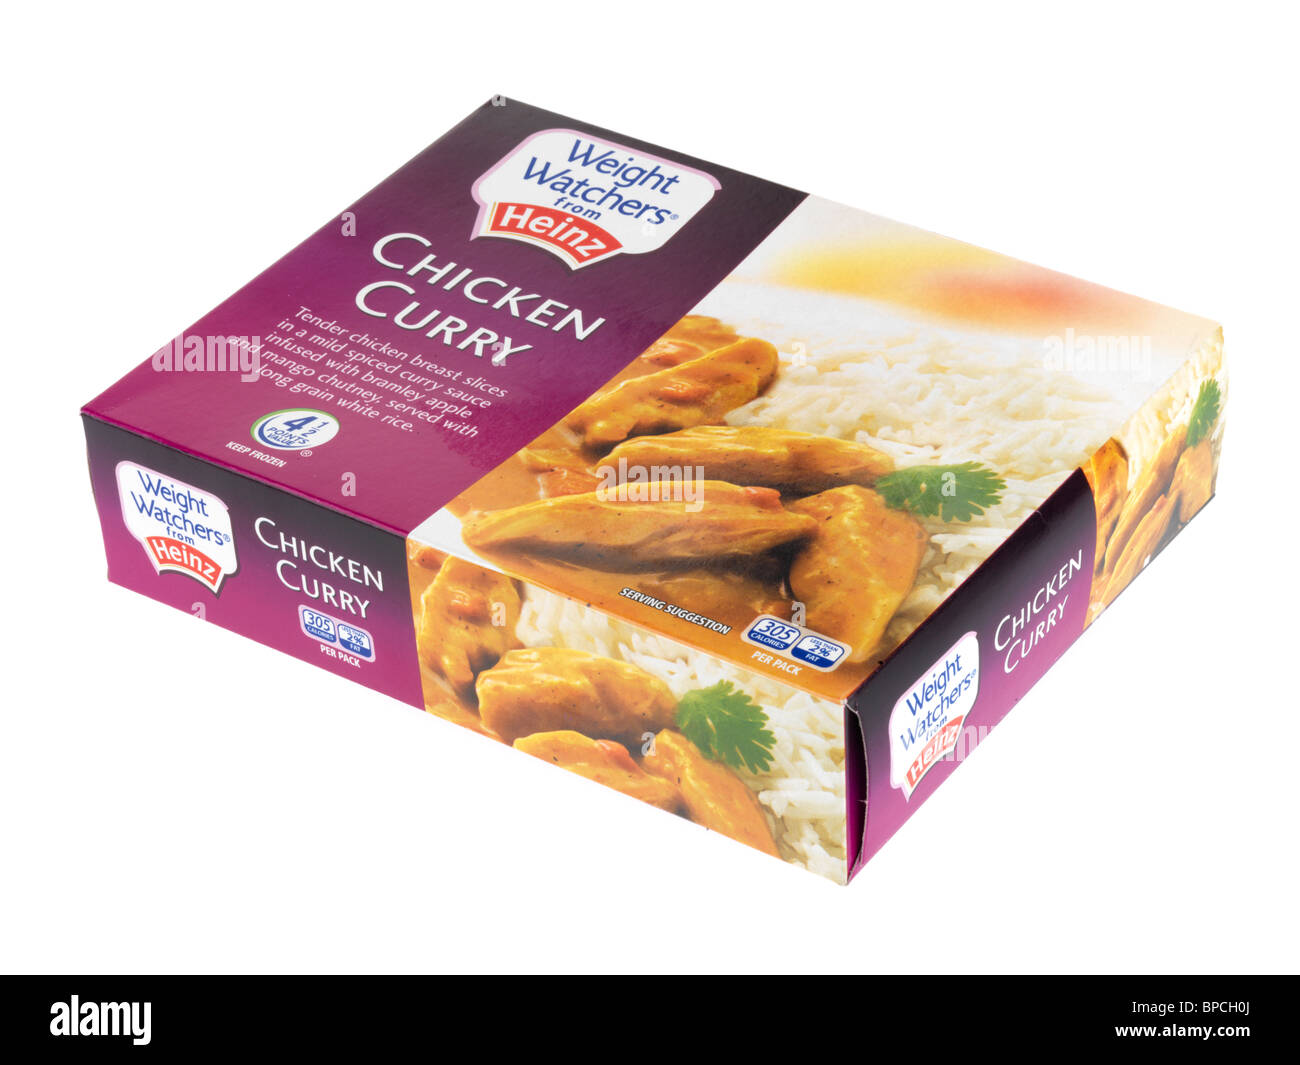 Chicken Curry - Stock Image